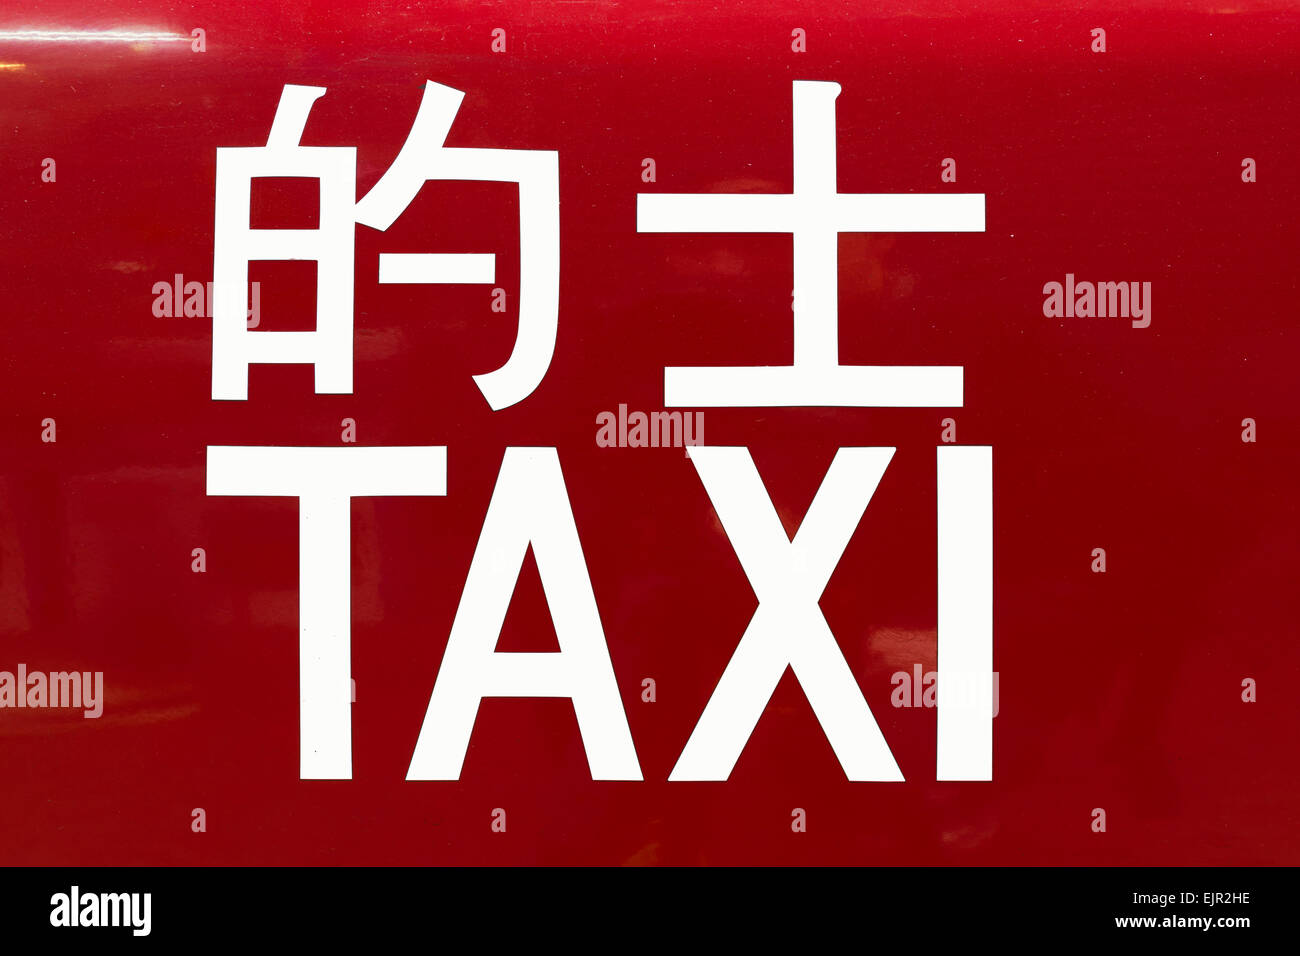 Close up photograph of a taxi sing in Hong Kong - Stock Image